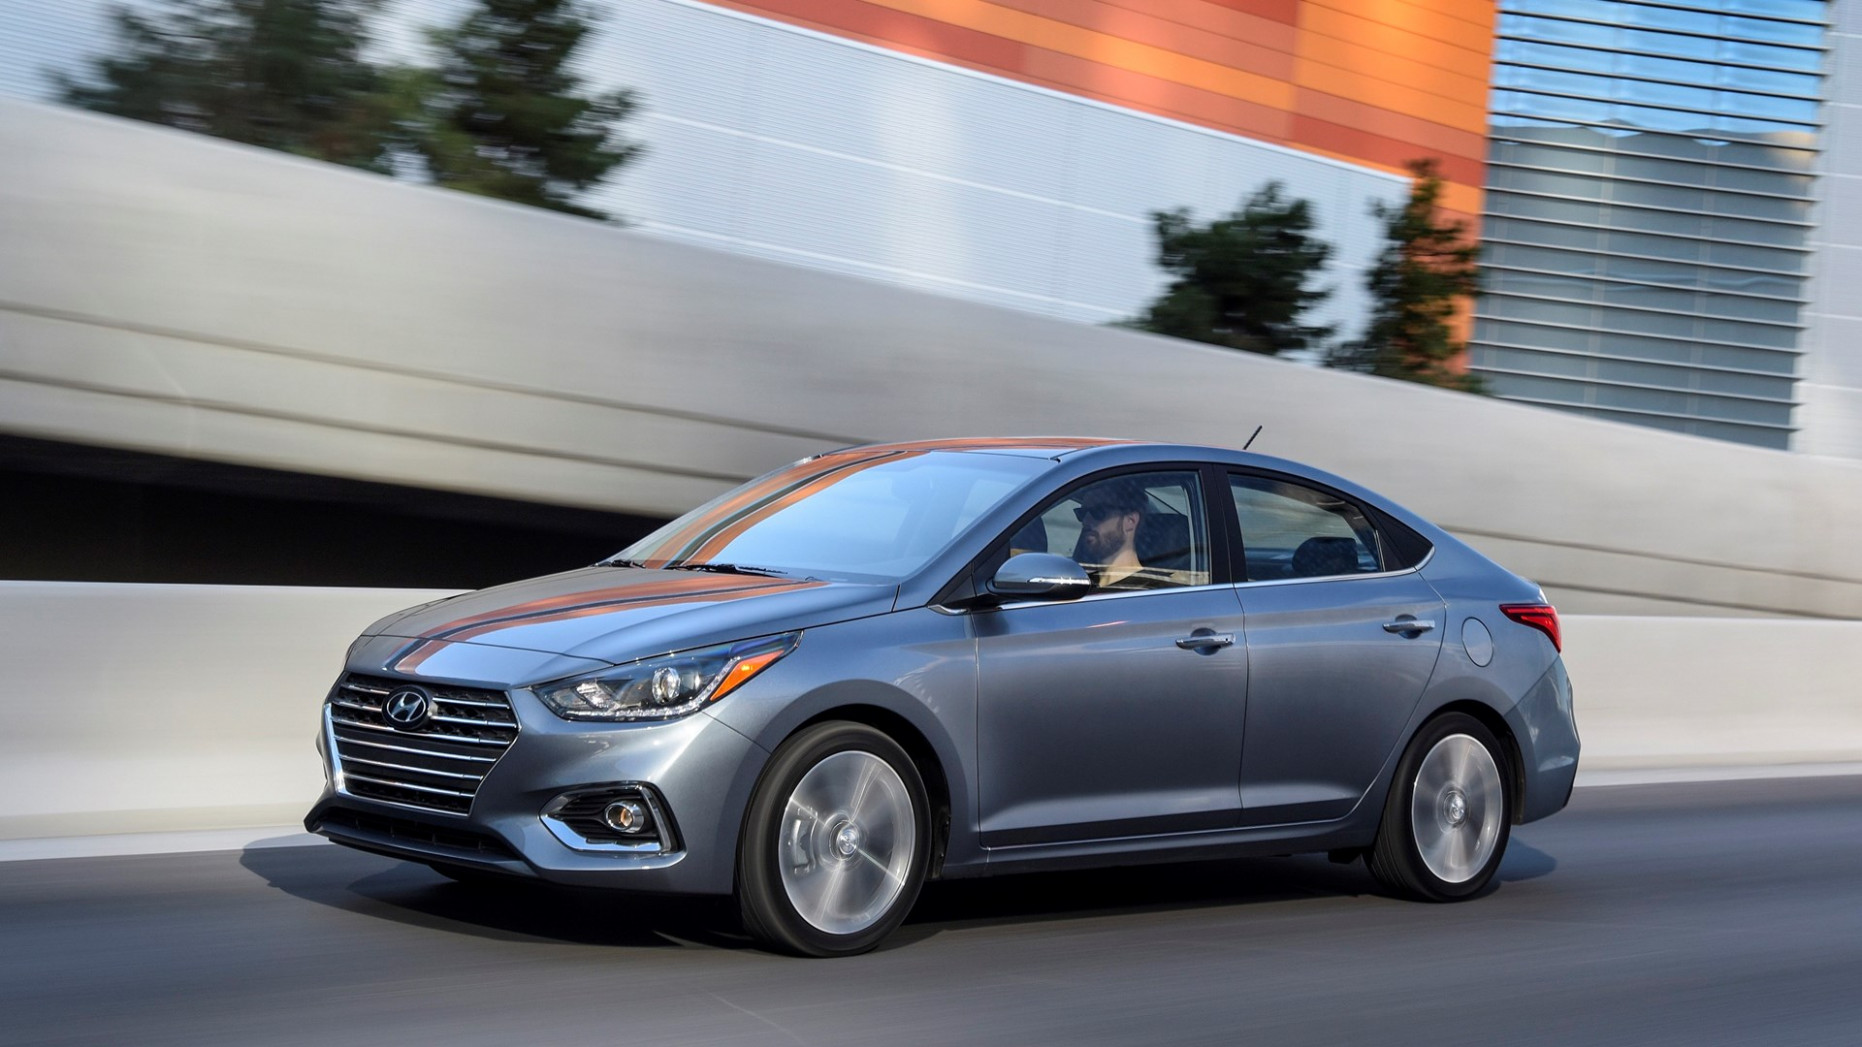 6 Hyundai Accent Boosts Fuel Economy with CVT, New Engine ..